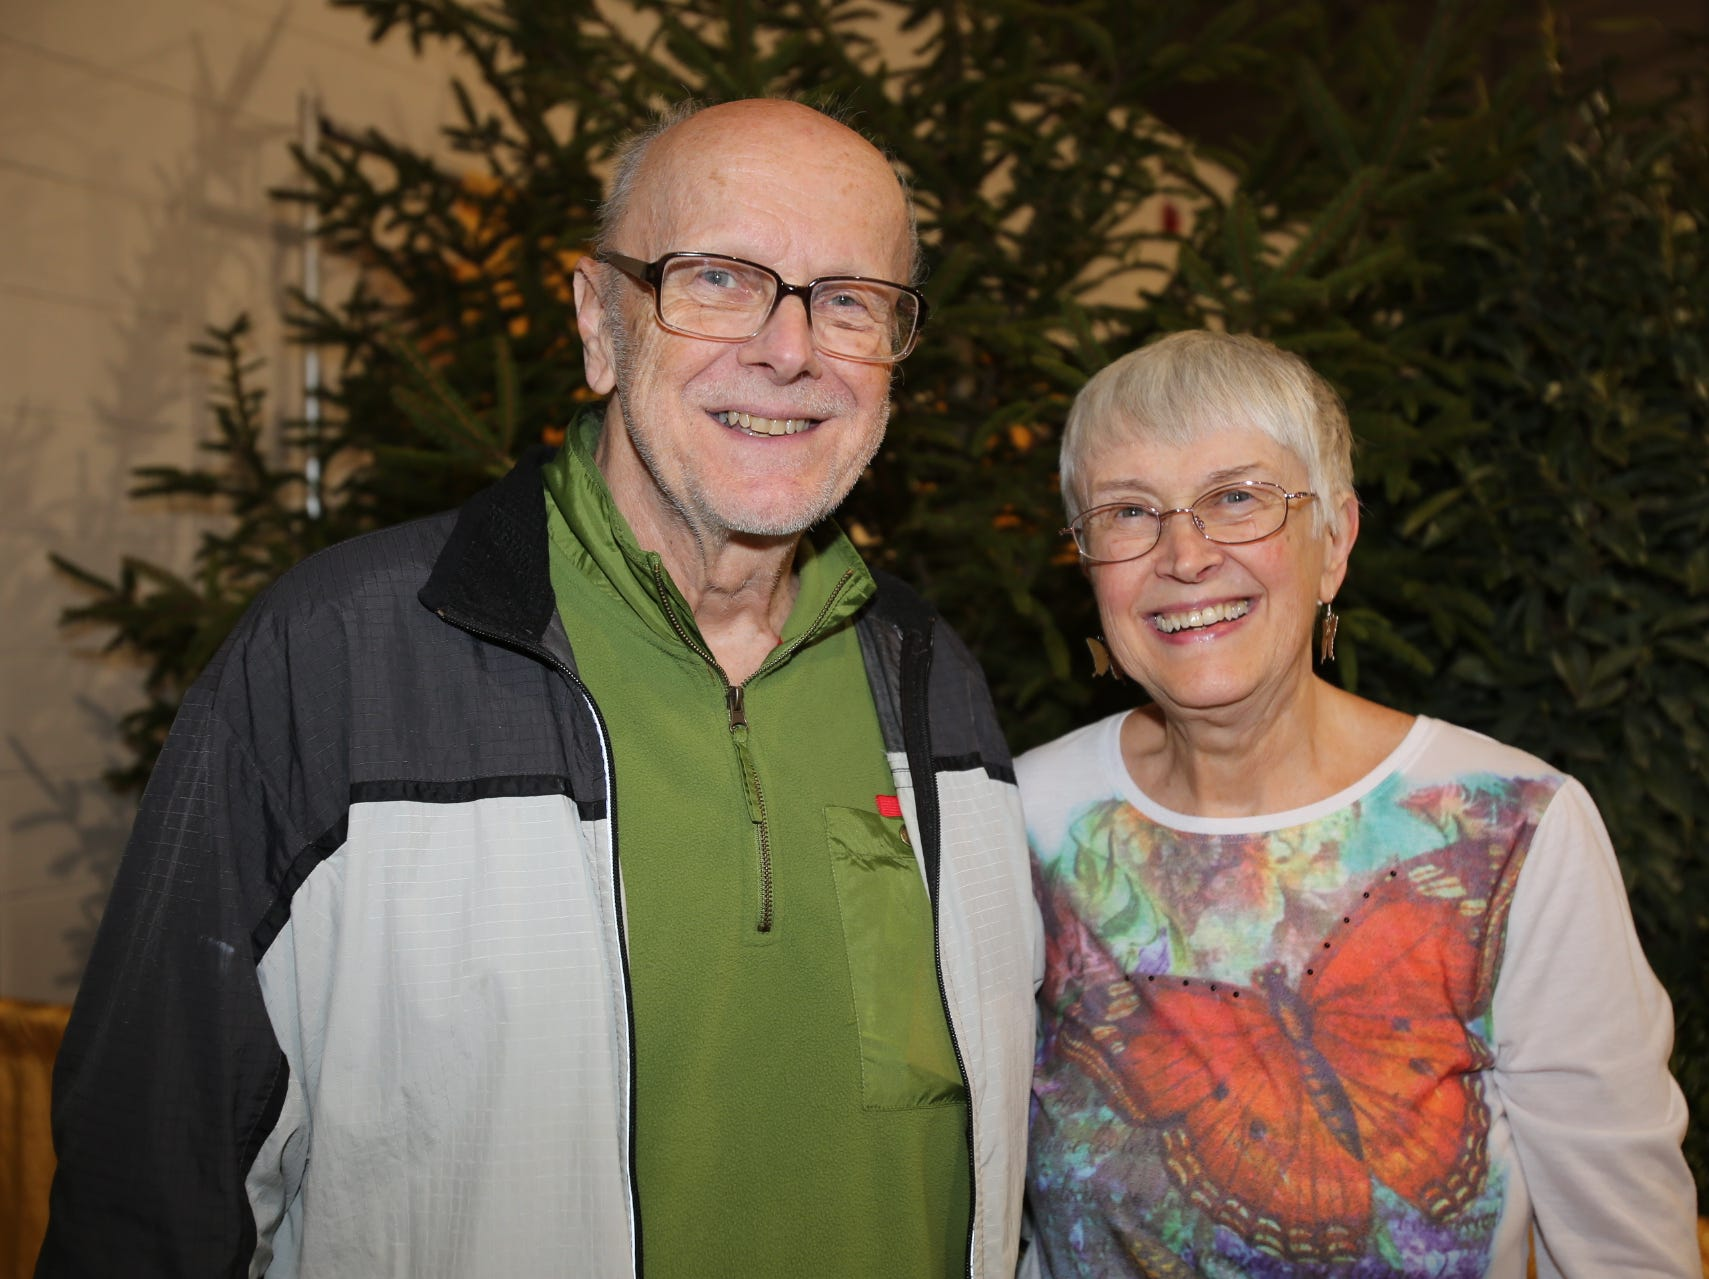 Don and Sandy Soderstrom